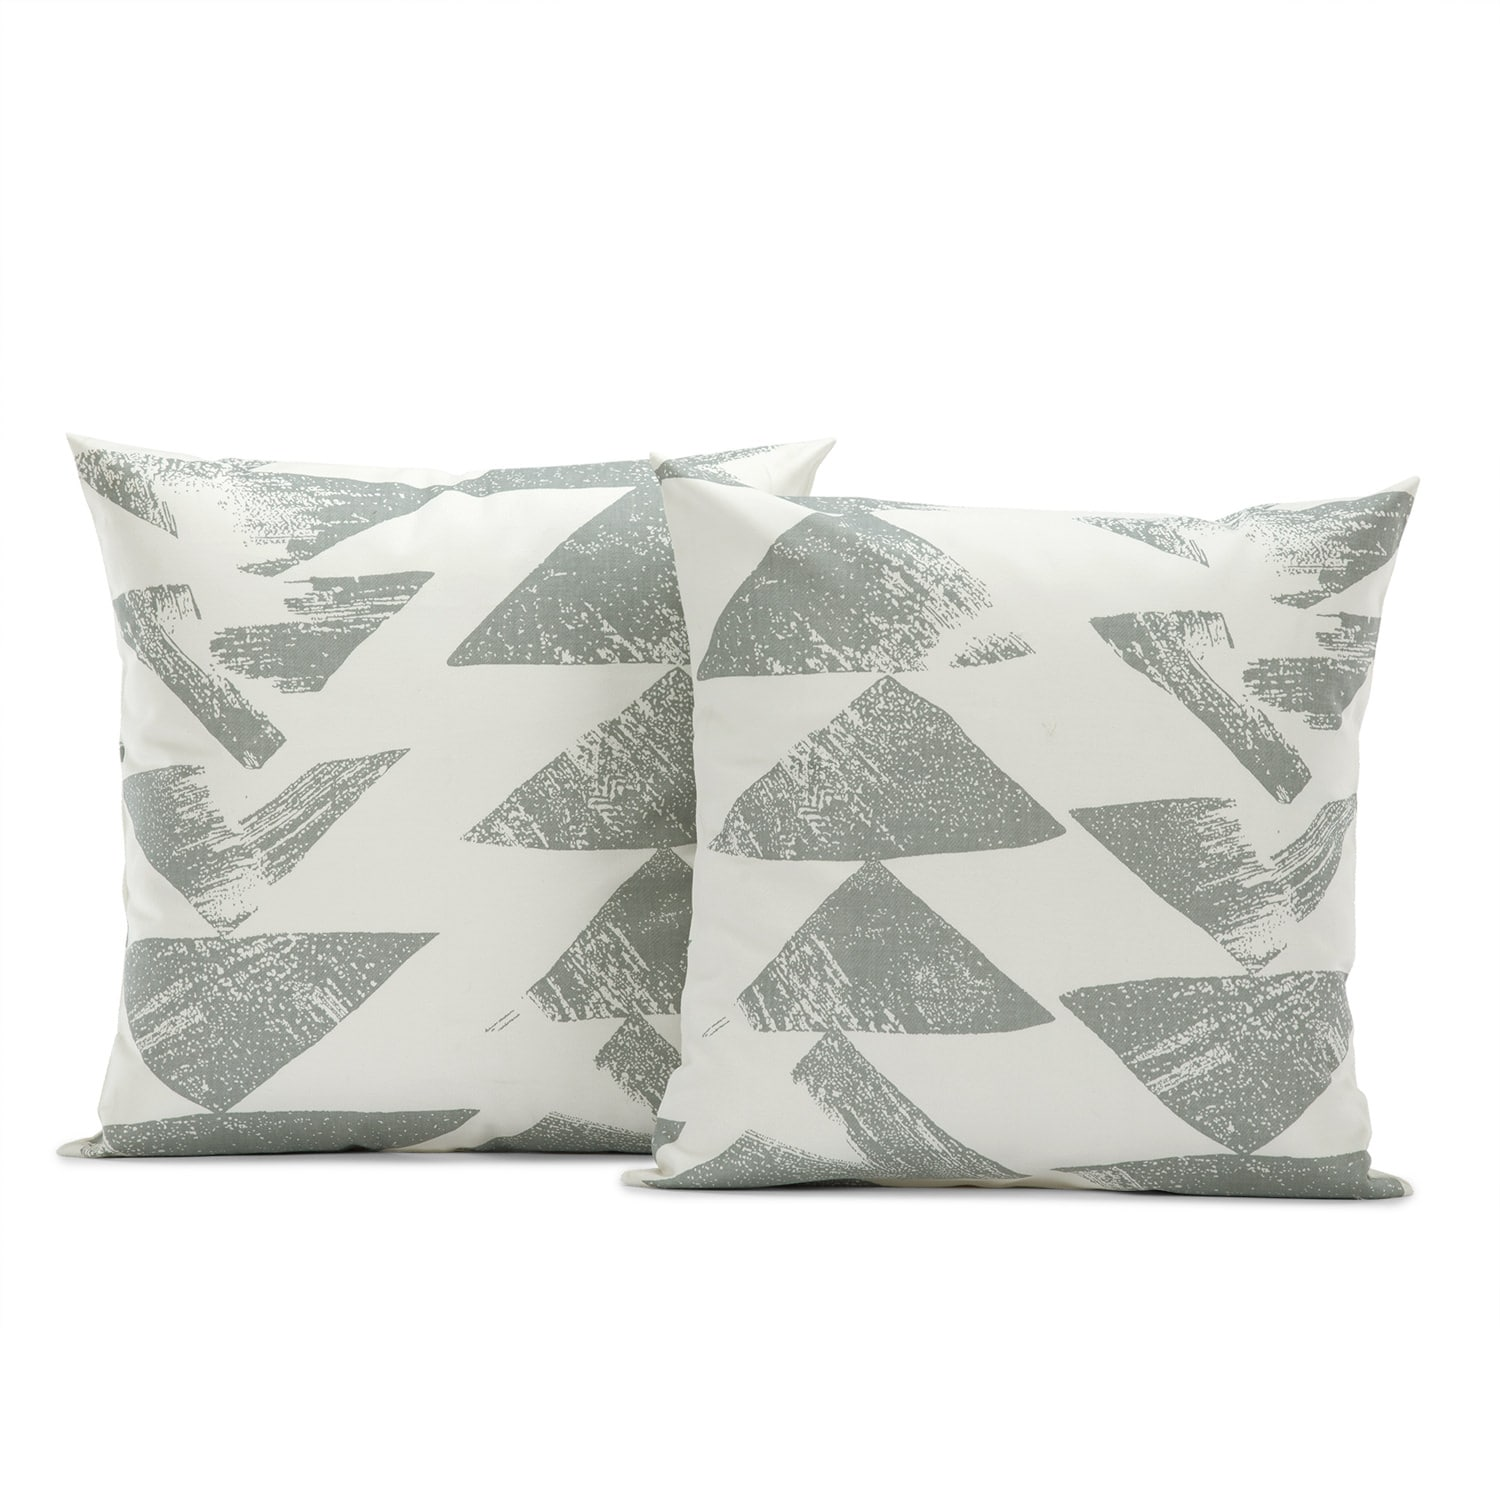 Traid Smoke Printed Cotton Cushion Covers - PAIR